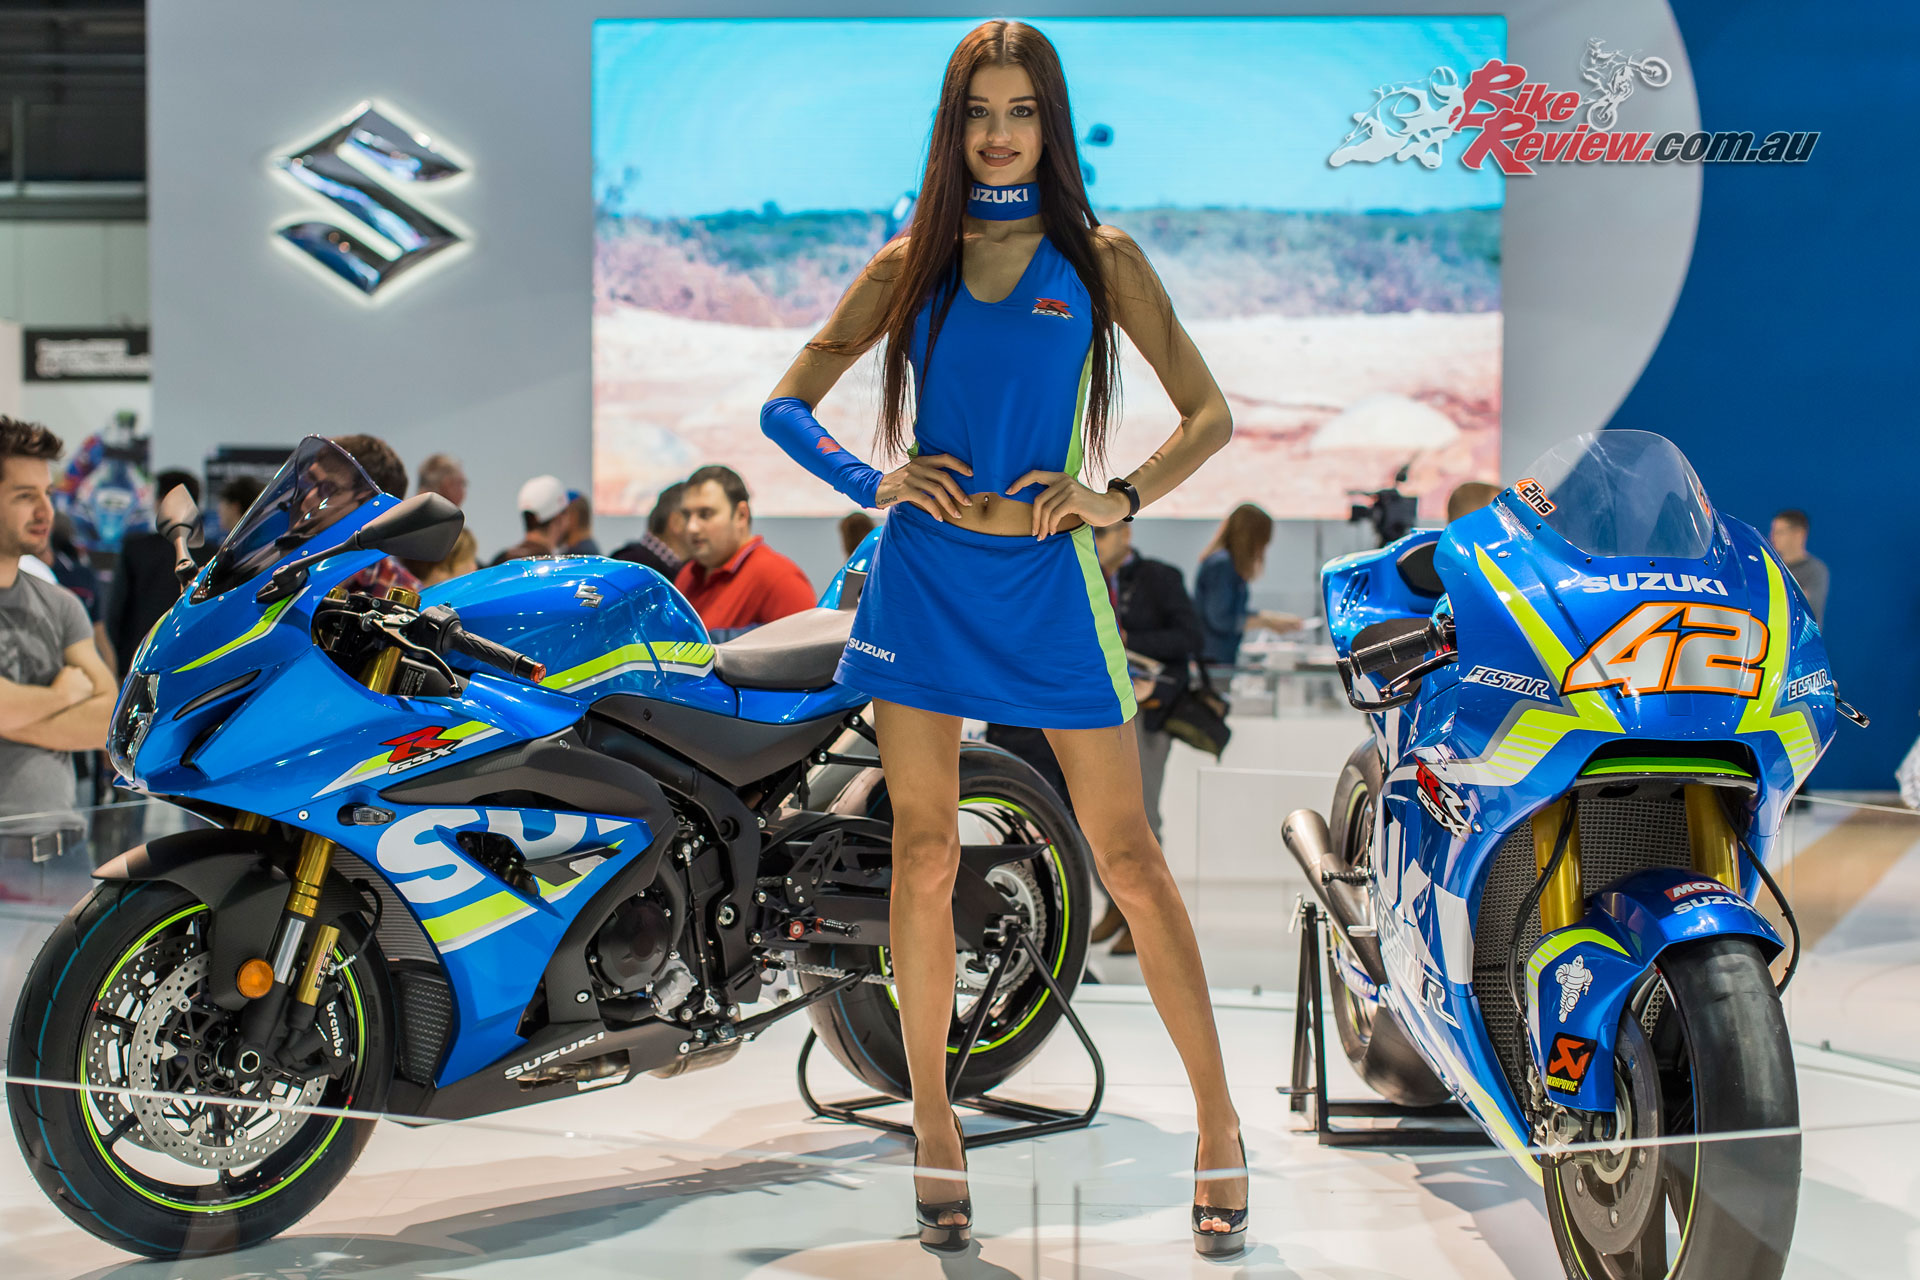 Suzuki concentrated on their existing models and race presence with one exception...